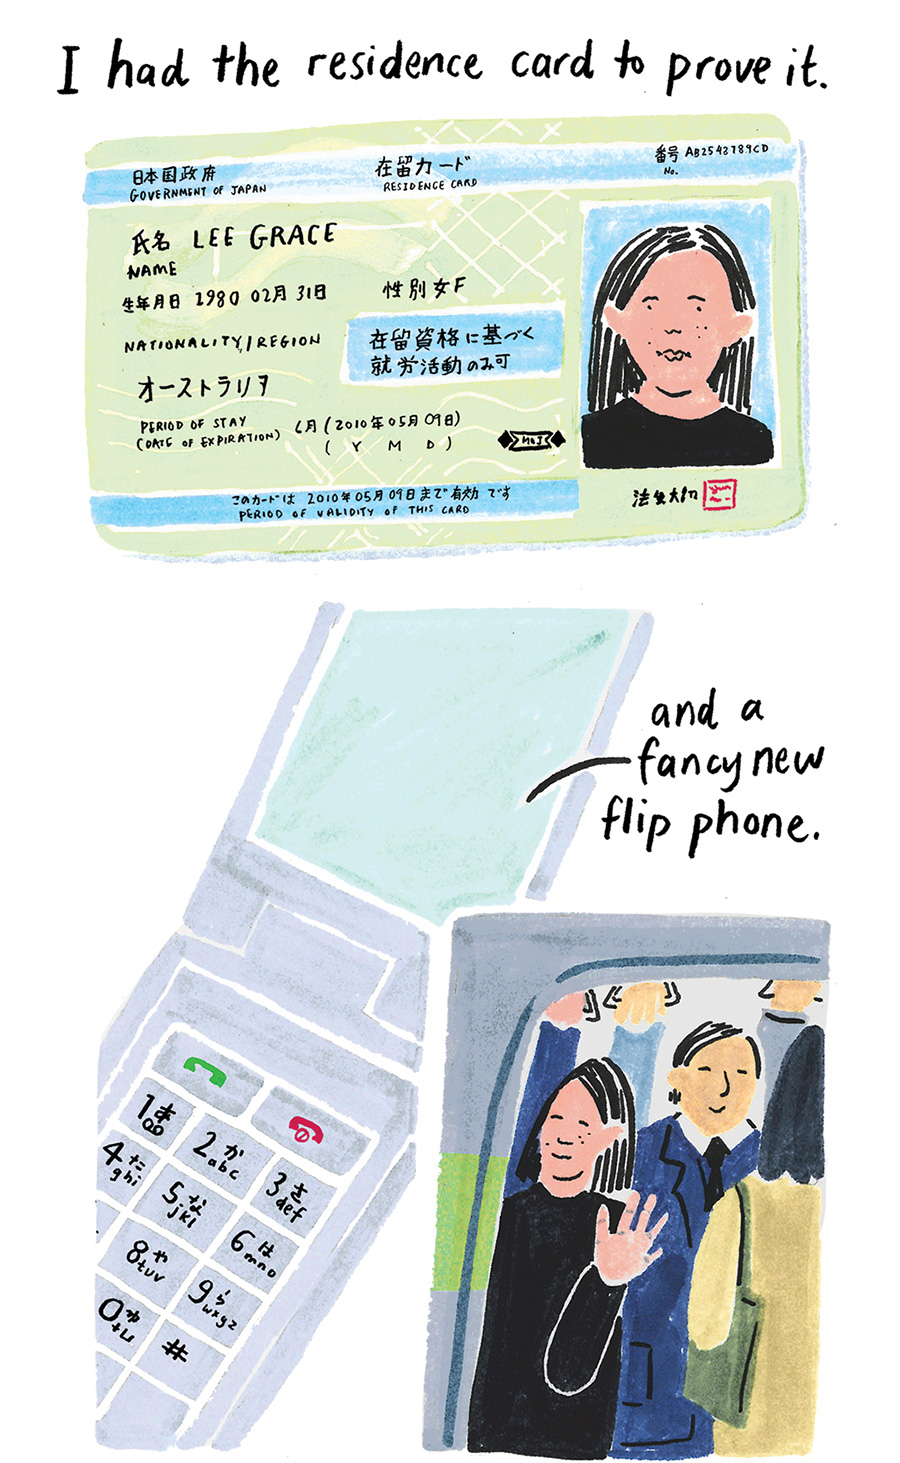 """""""I had the residence card to prove it [pic of Grace's card] and a fancy new flip phone [pic of phone]."""""""